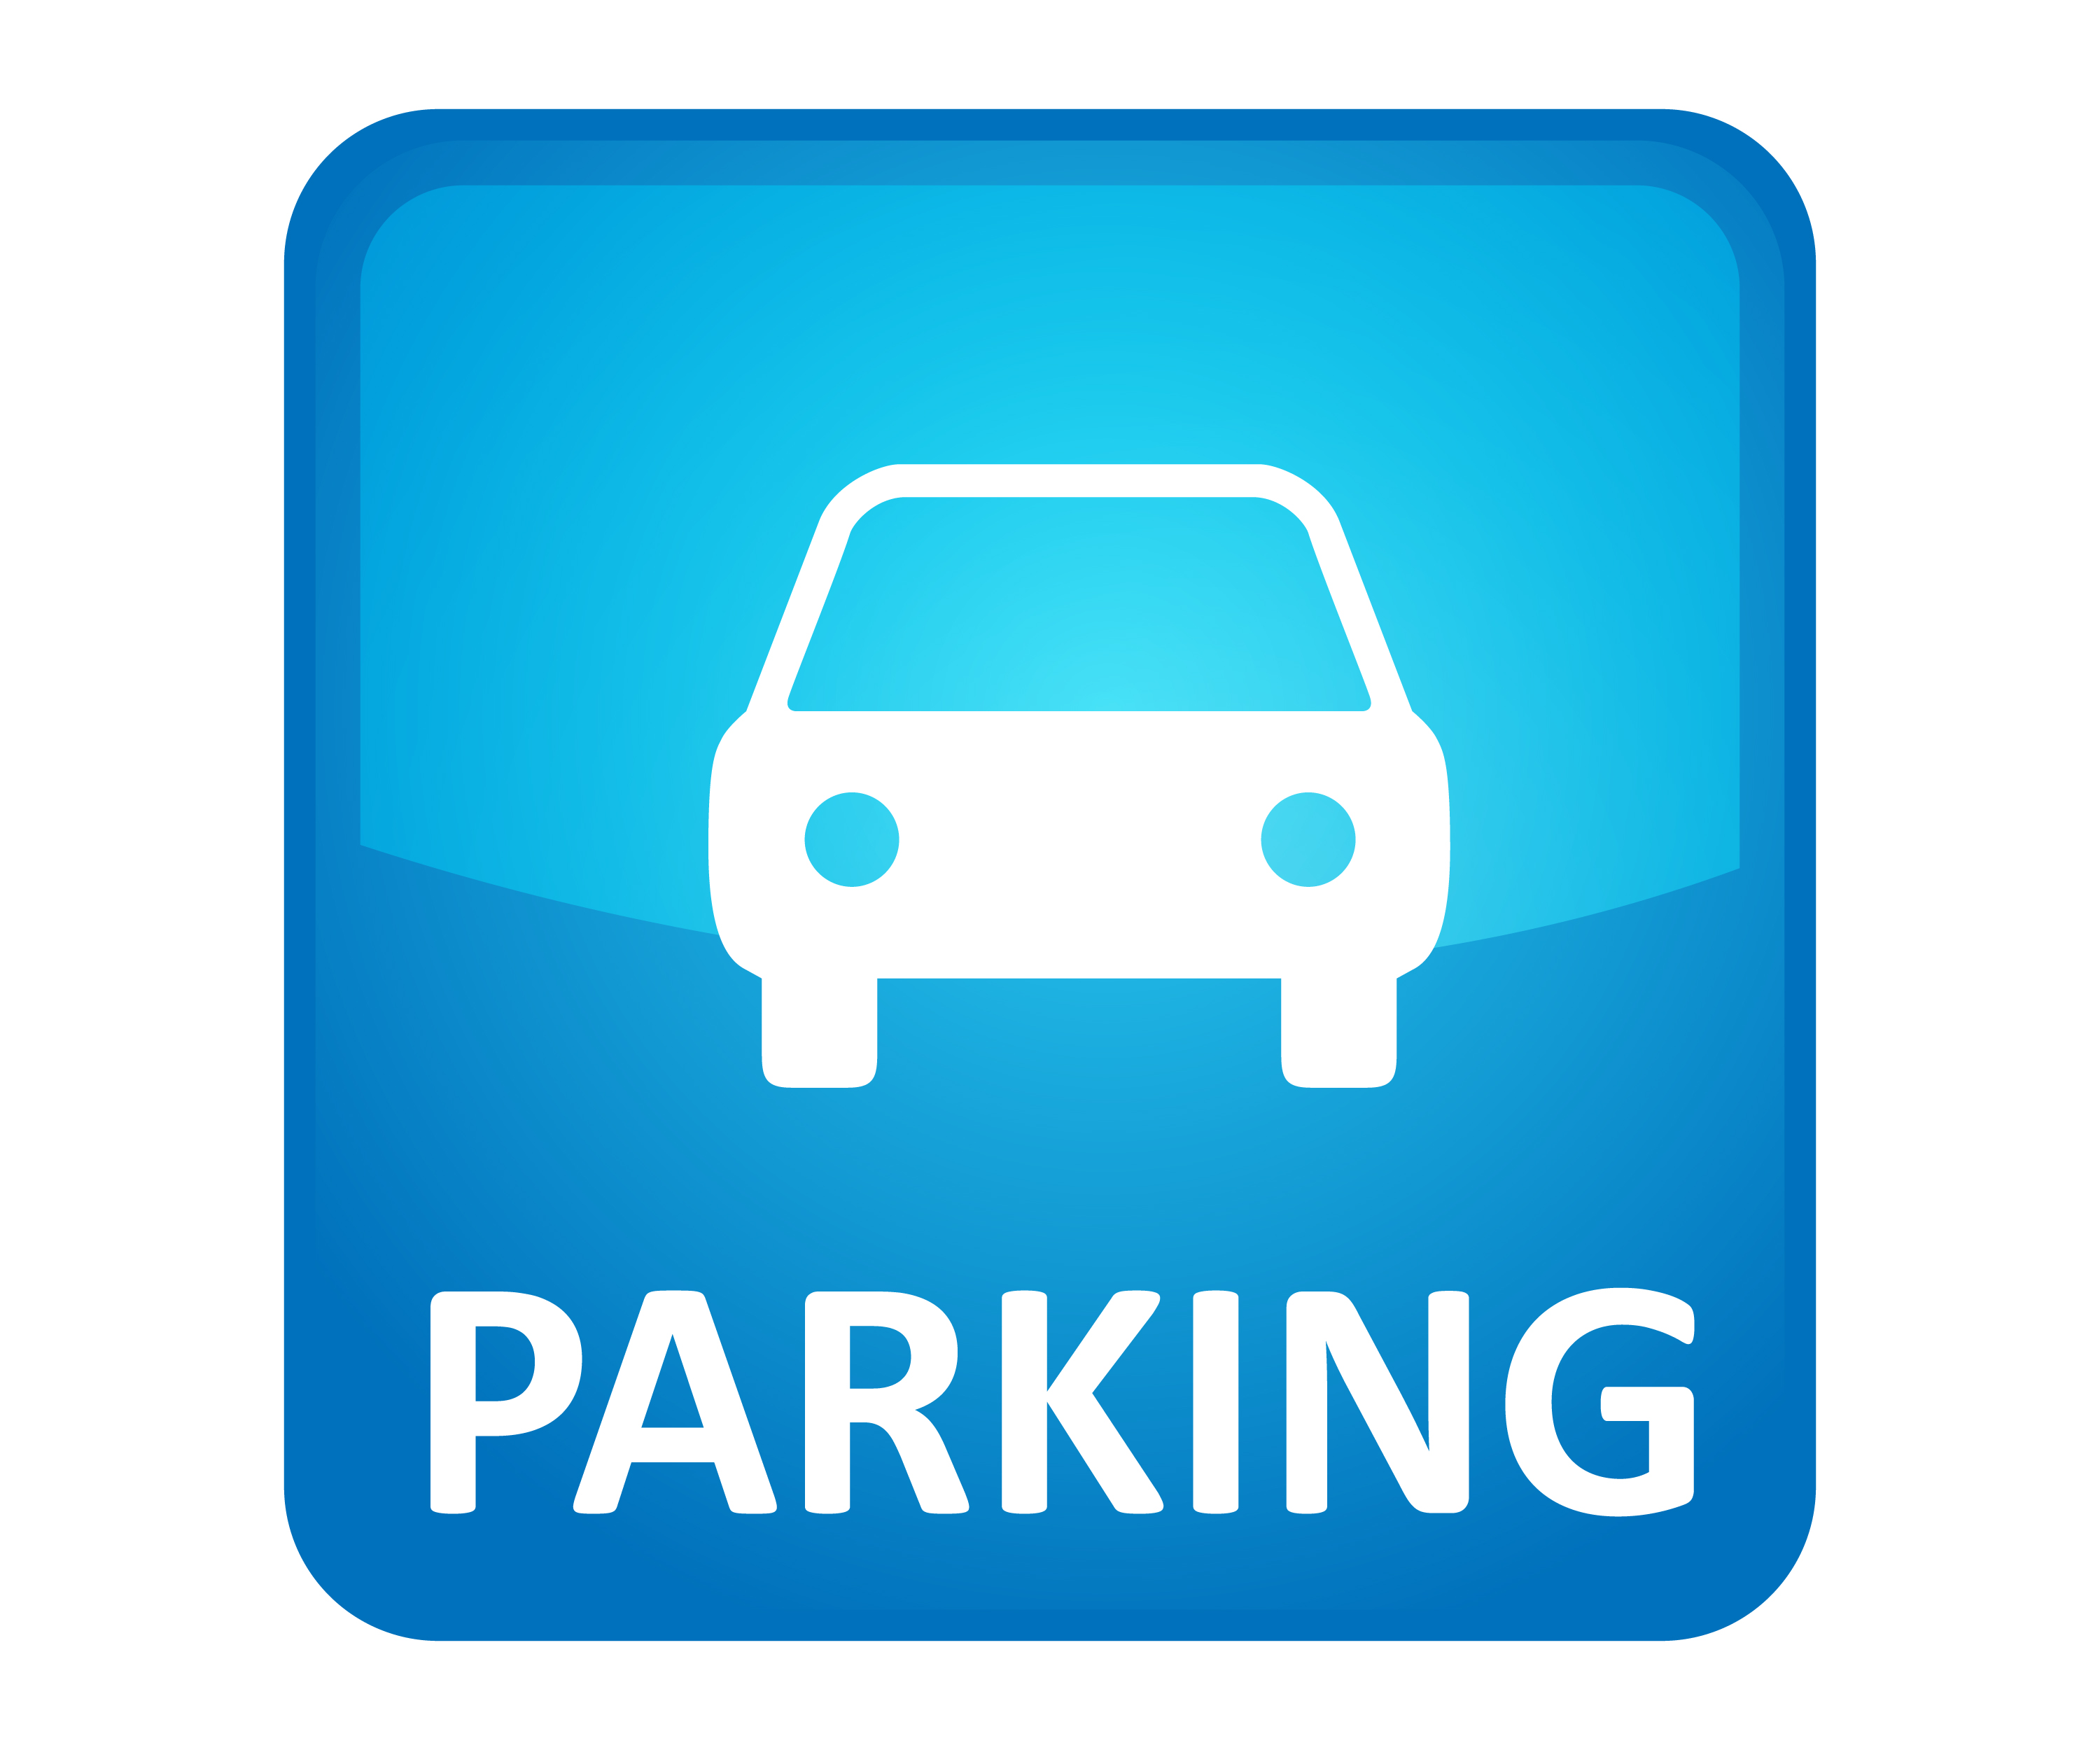 parking-gratuito-en-le-parisien-nails-bar-plaza-legion